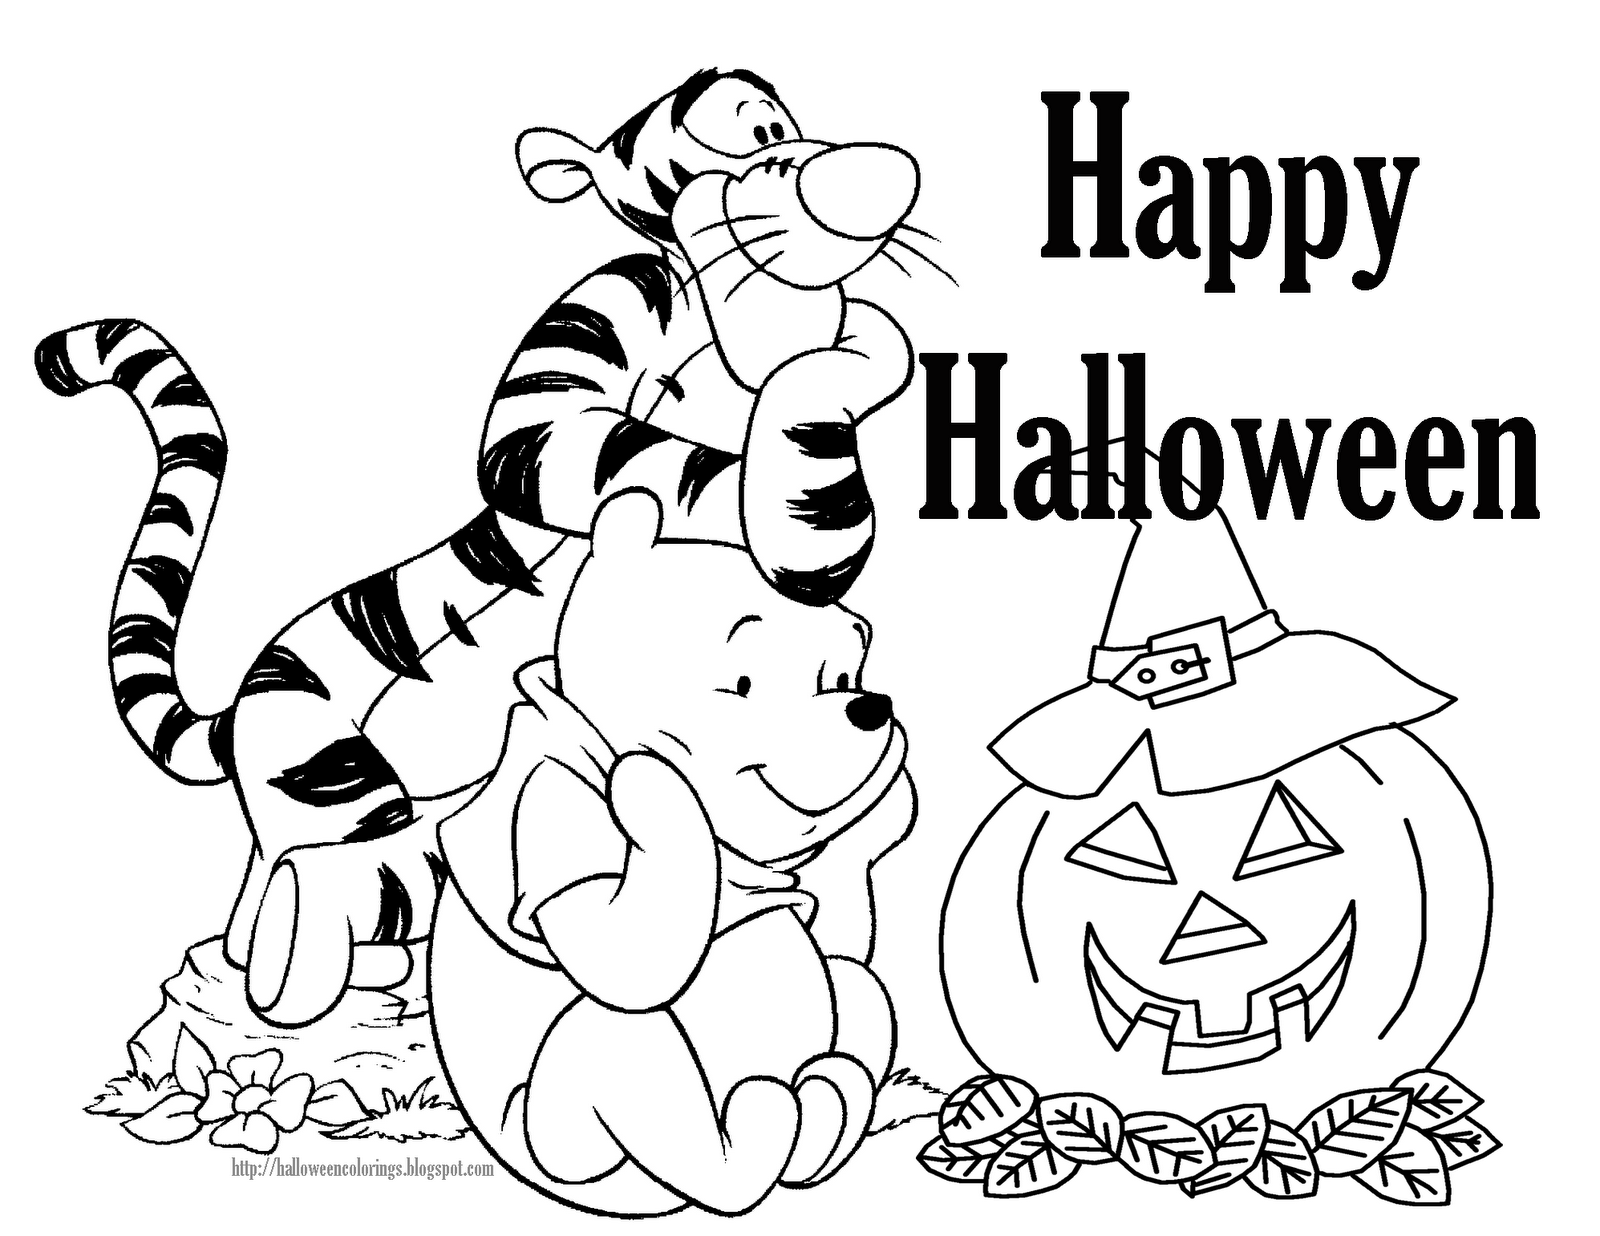 photo regarding Disney Halloween Coloring Pages Printable titled Free of charge Disney Halloween Coloring Internet pages clroom tips